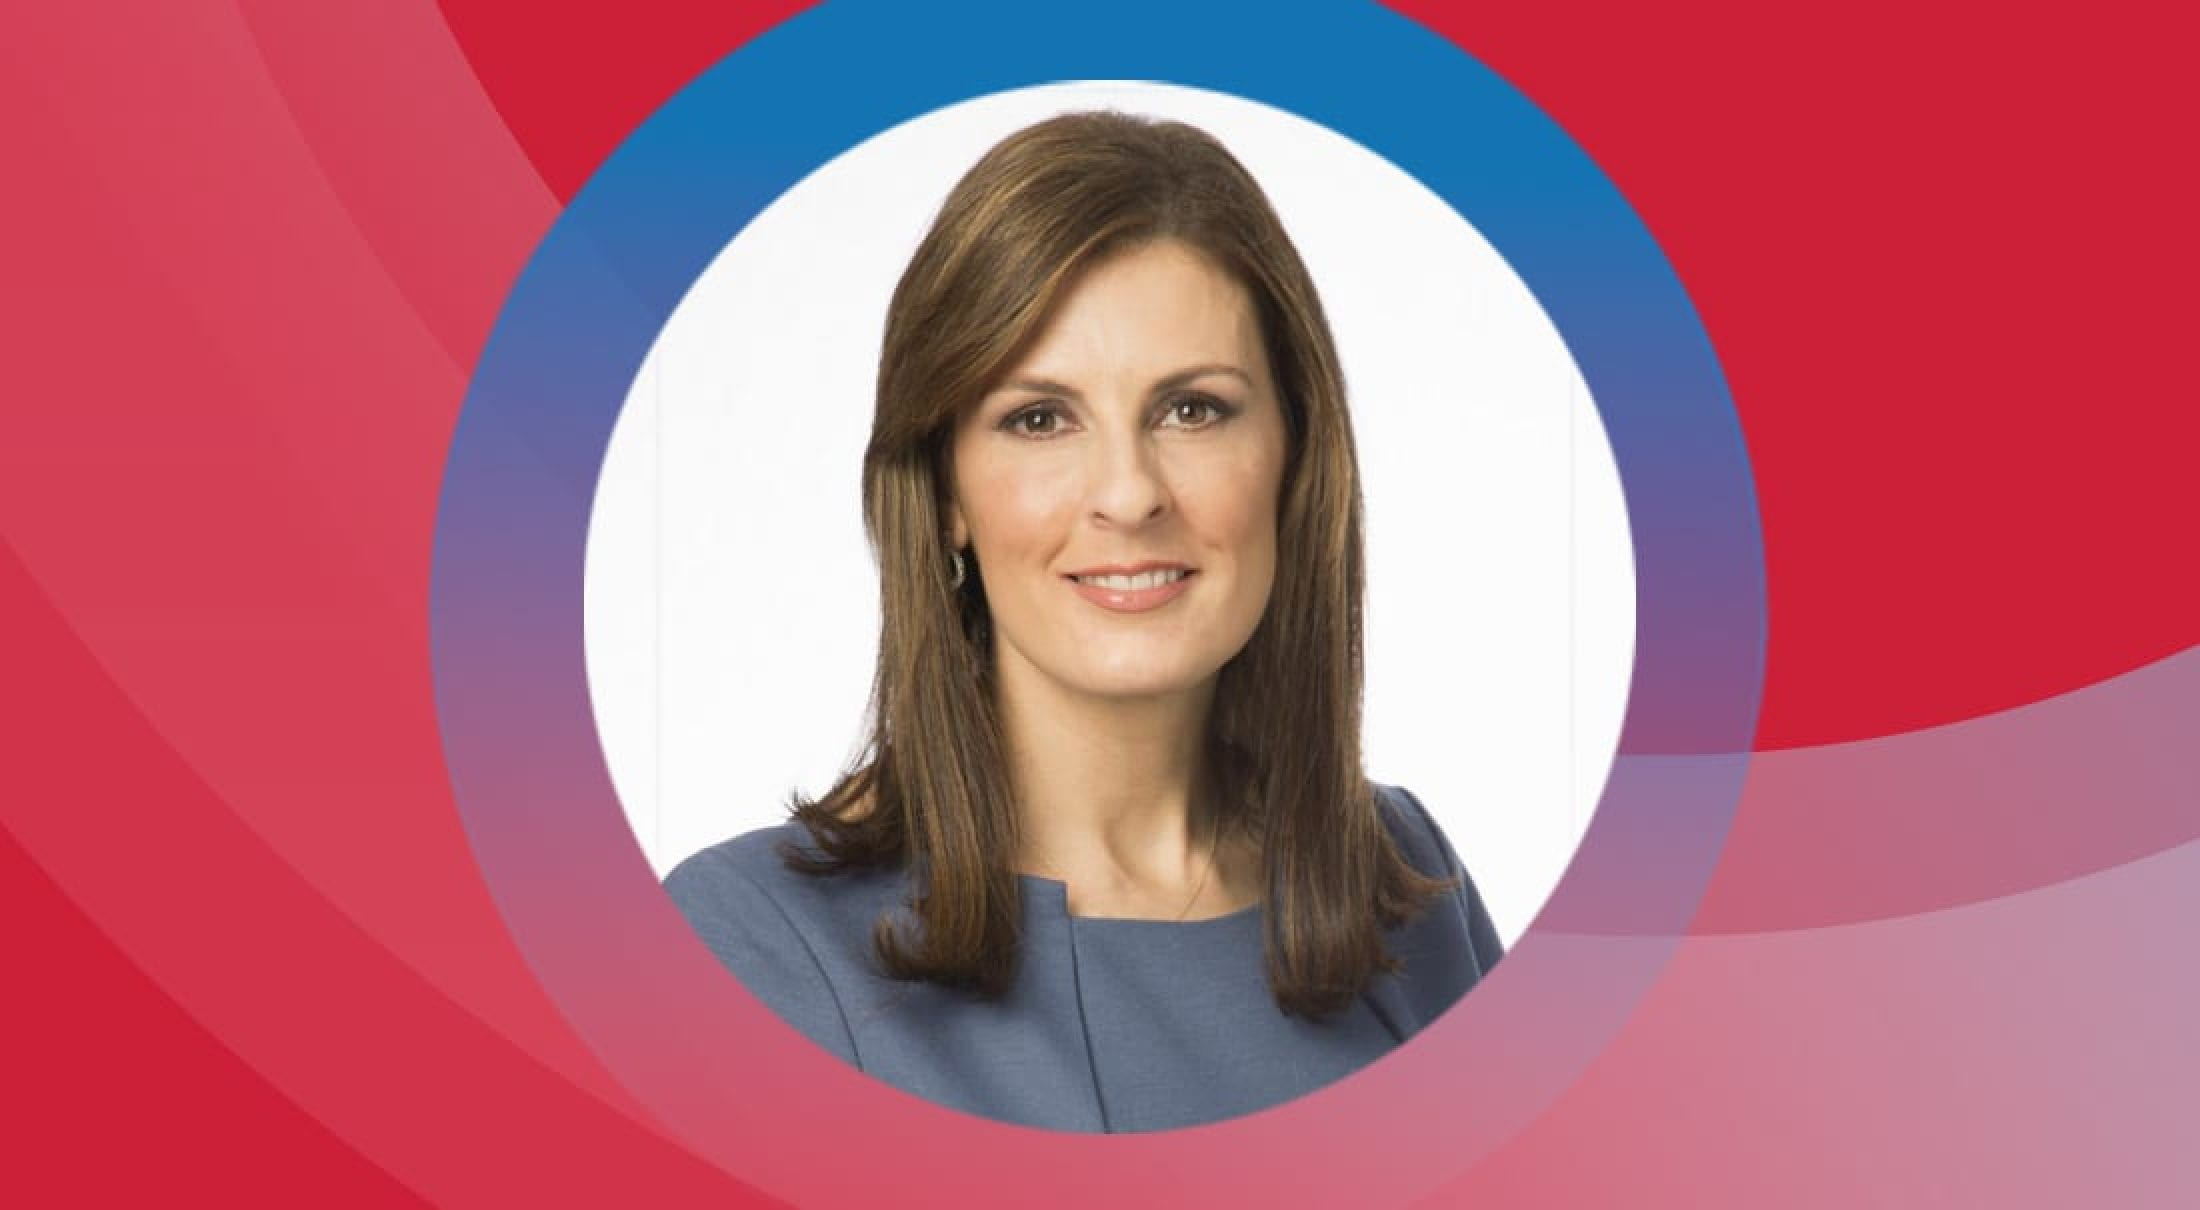 SMU alumna Erin Nealy Cox '95, the U.S. Attorney for the Northern District of Texas.